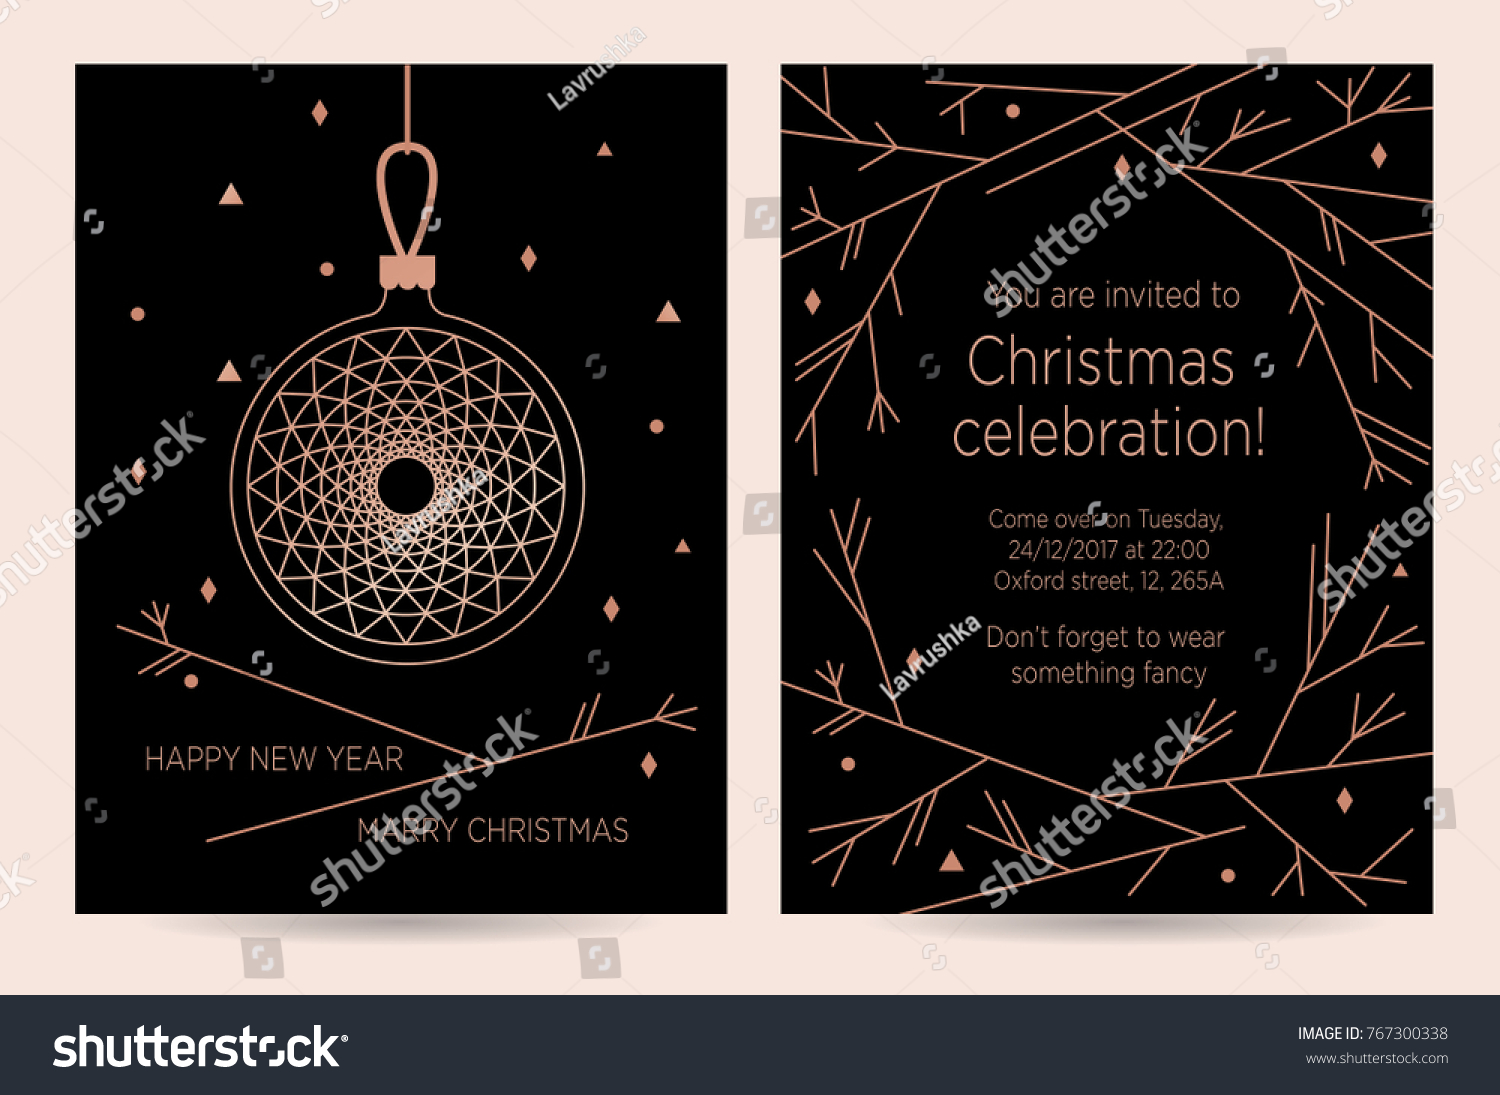 new year invitation card for the party vector template for greeting card